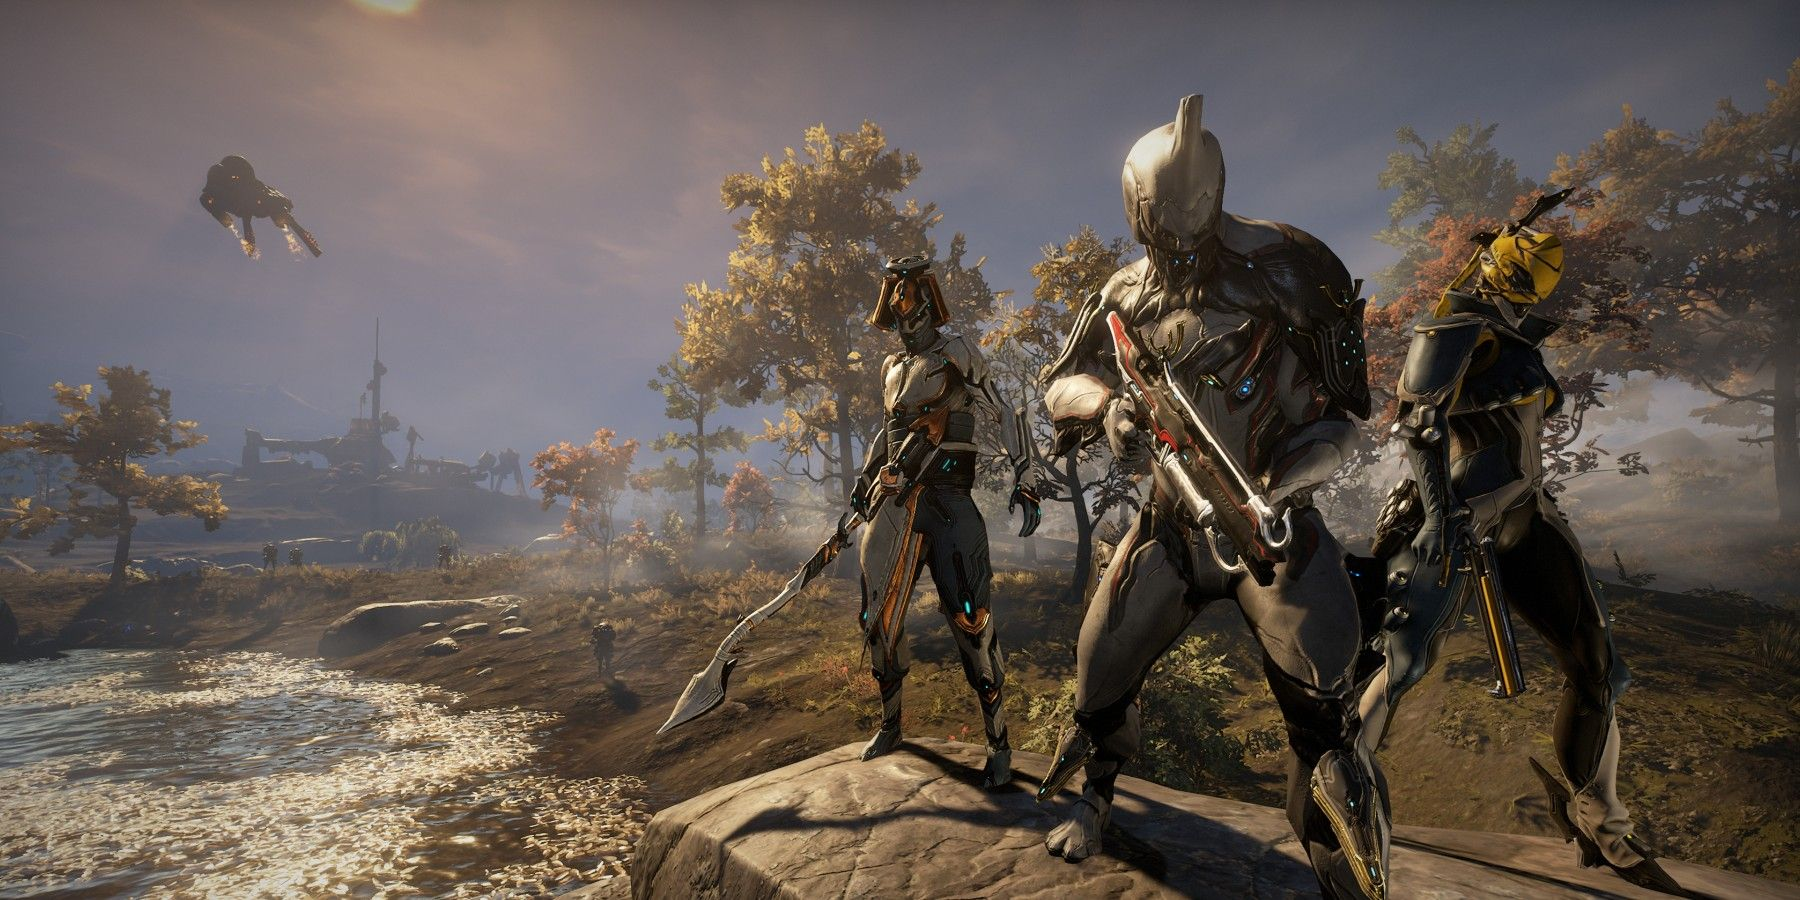 Warframe Jumps To PS5 & Gives PlayStation Players Free Exclusive Content